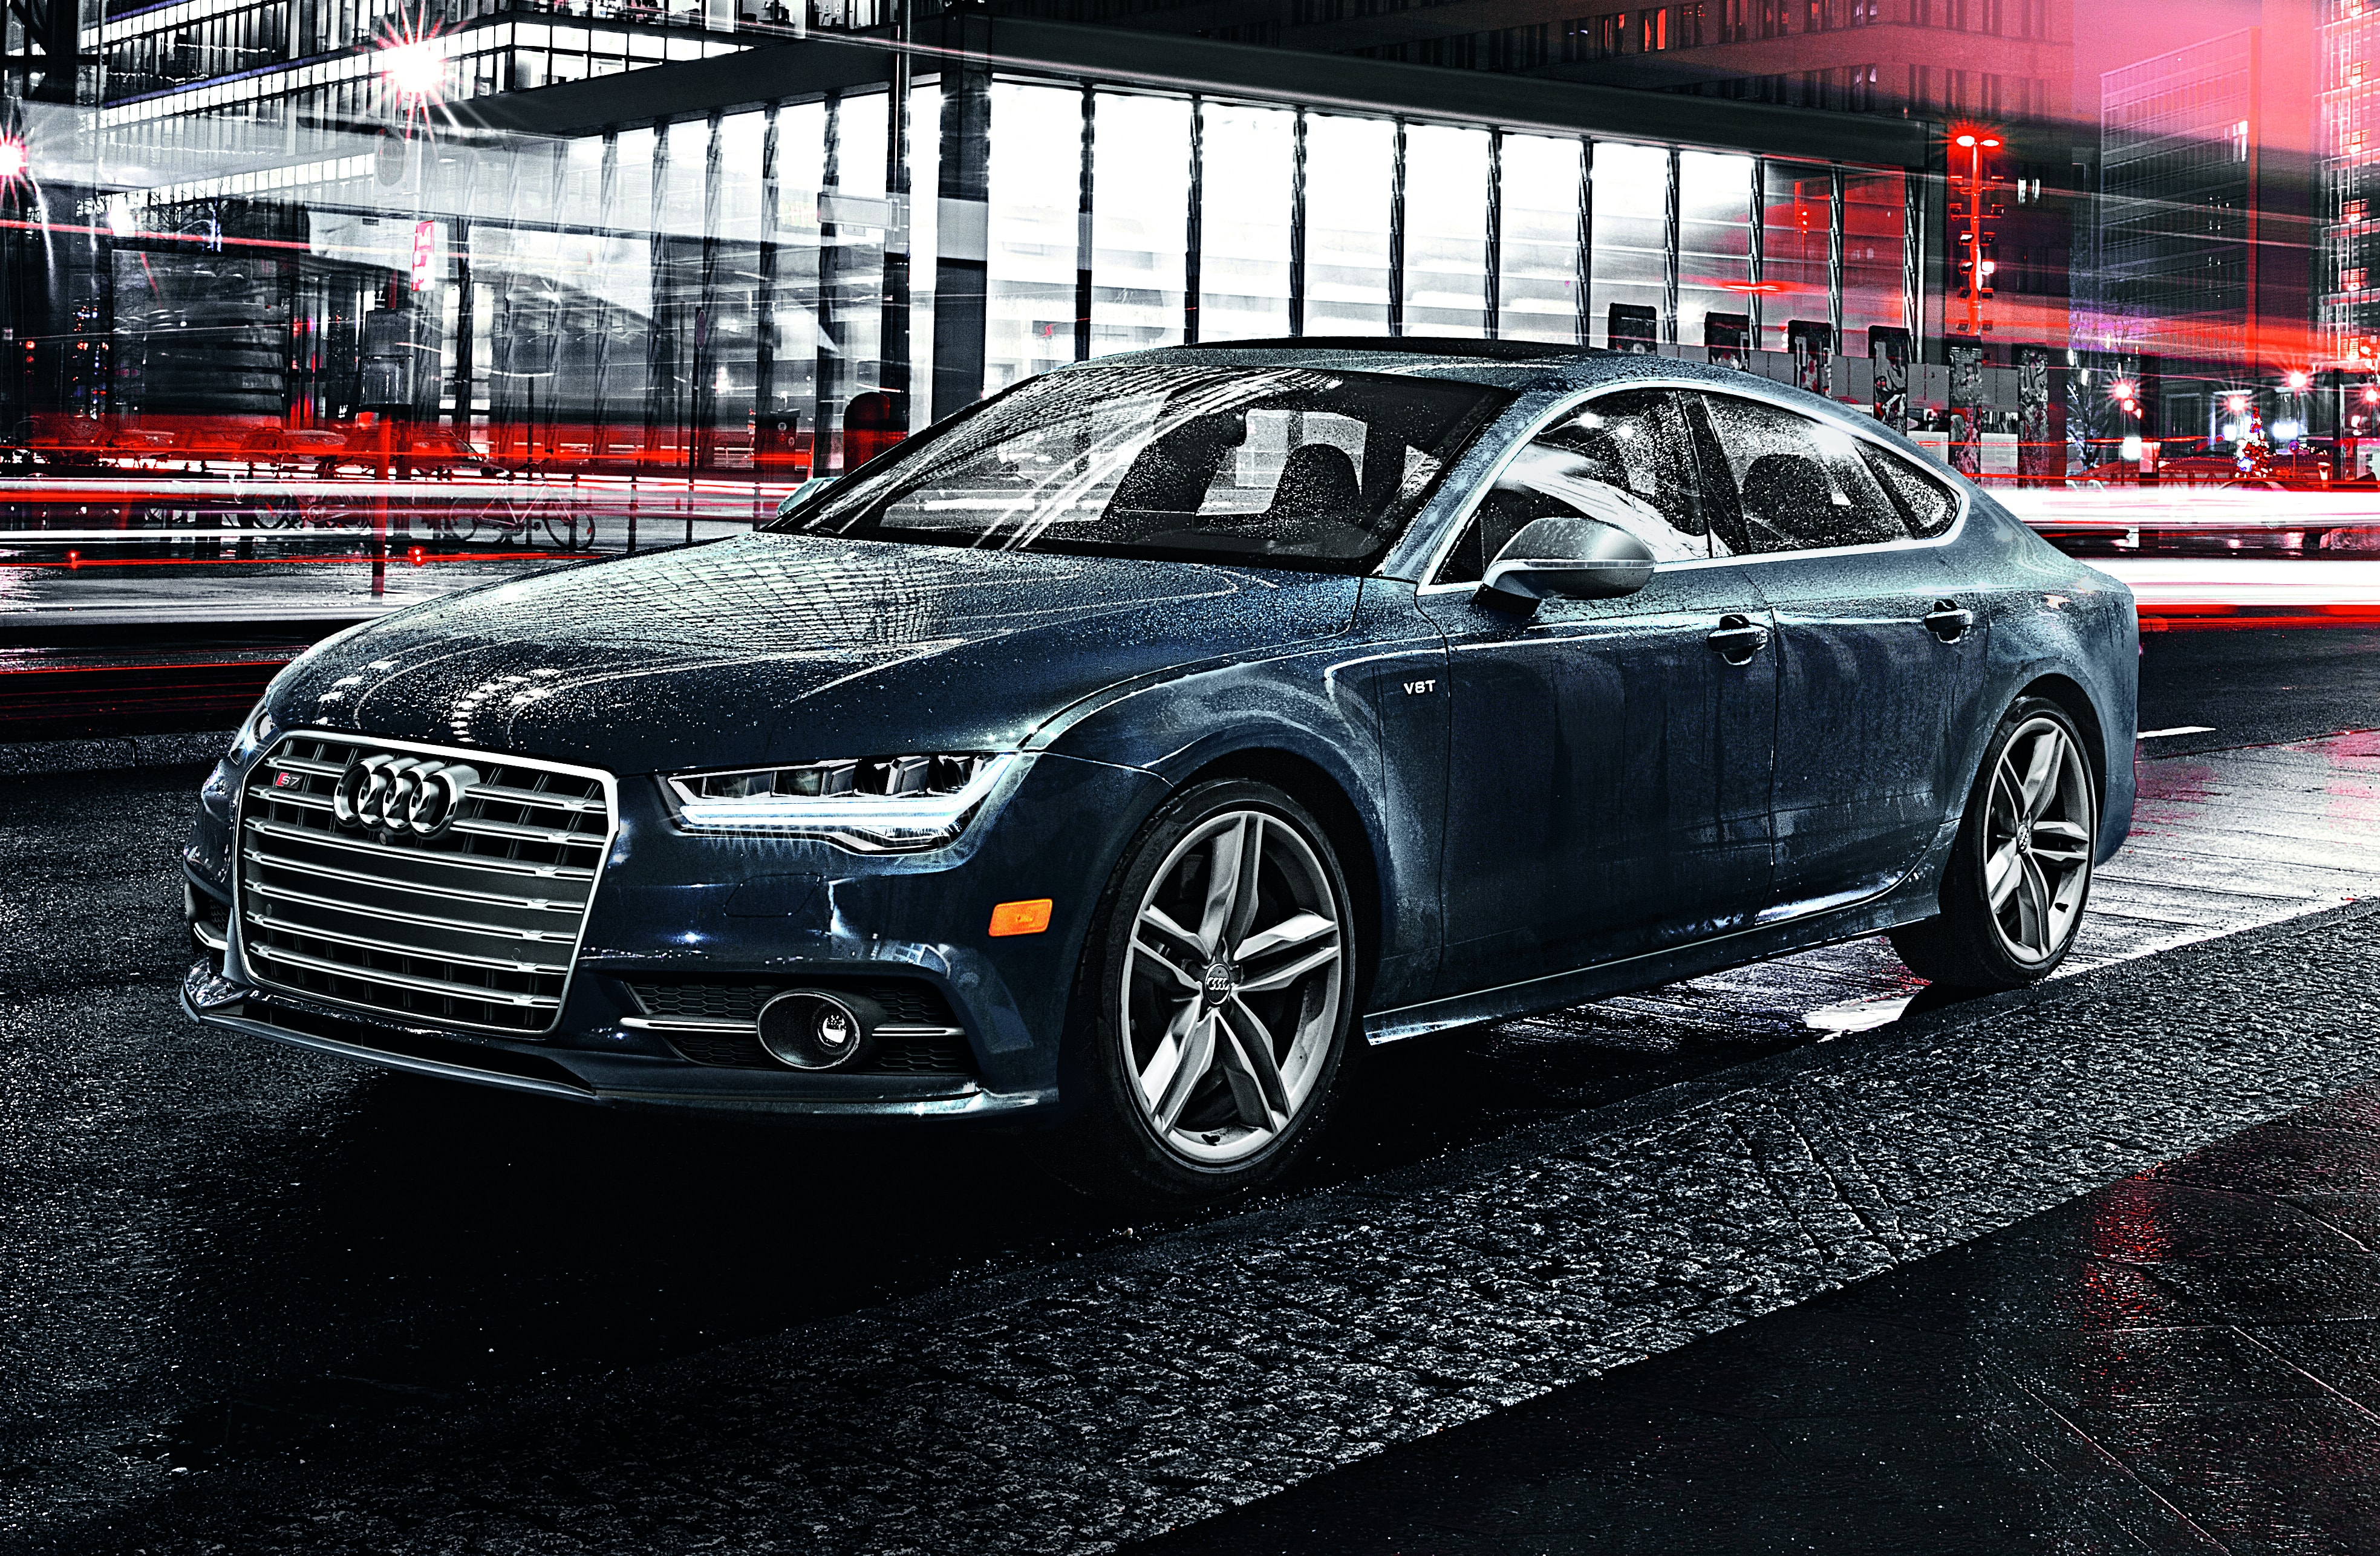 highland services park signature dealership com exchange htm chicago il and by website in dealer advantage amenities audi